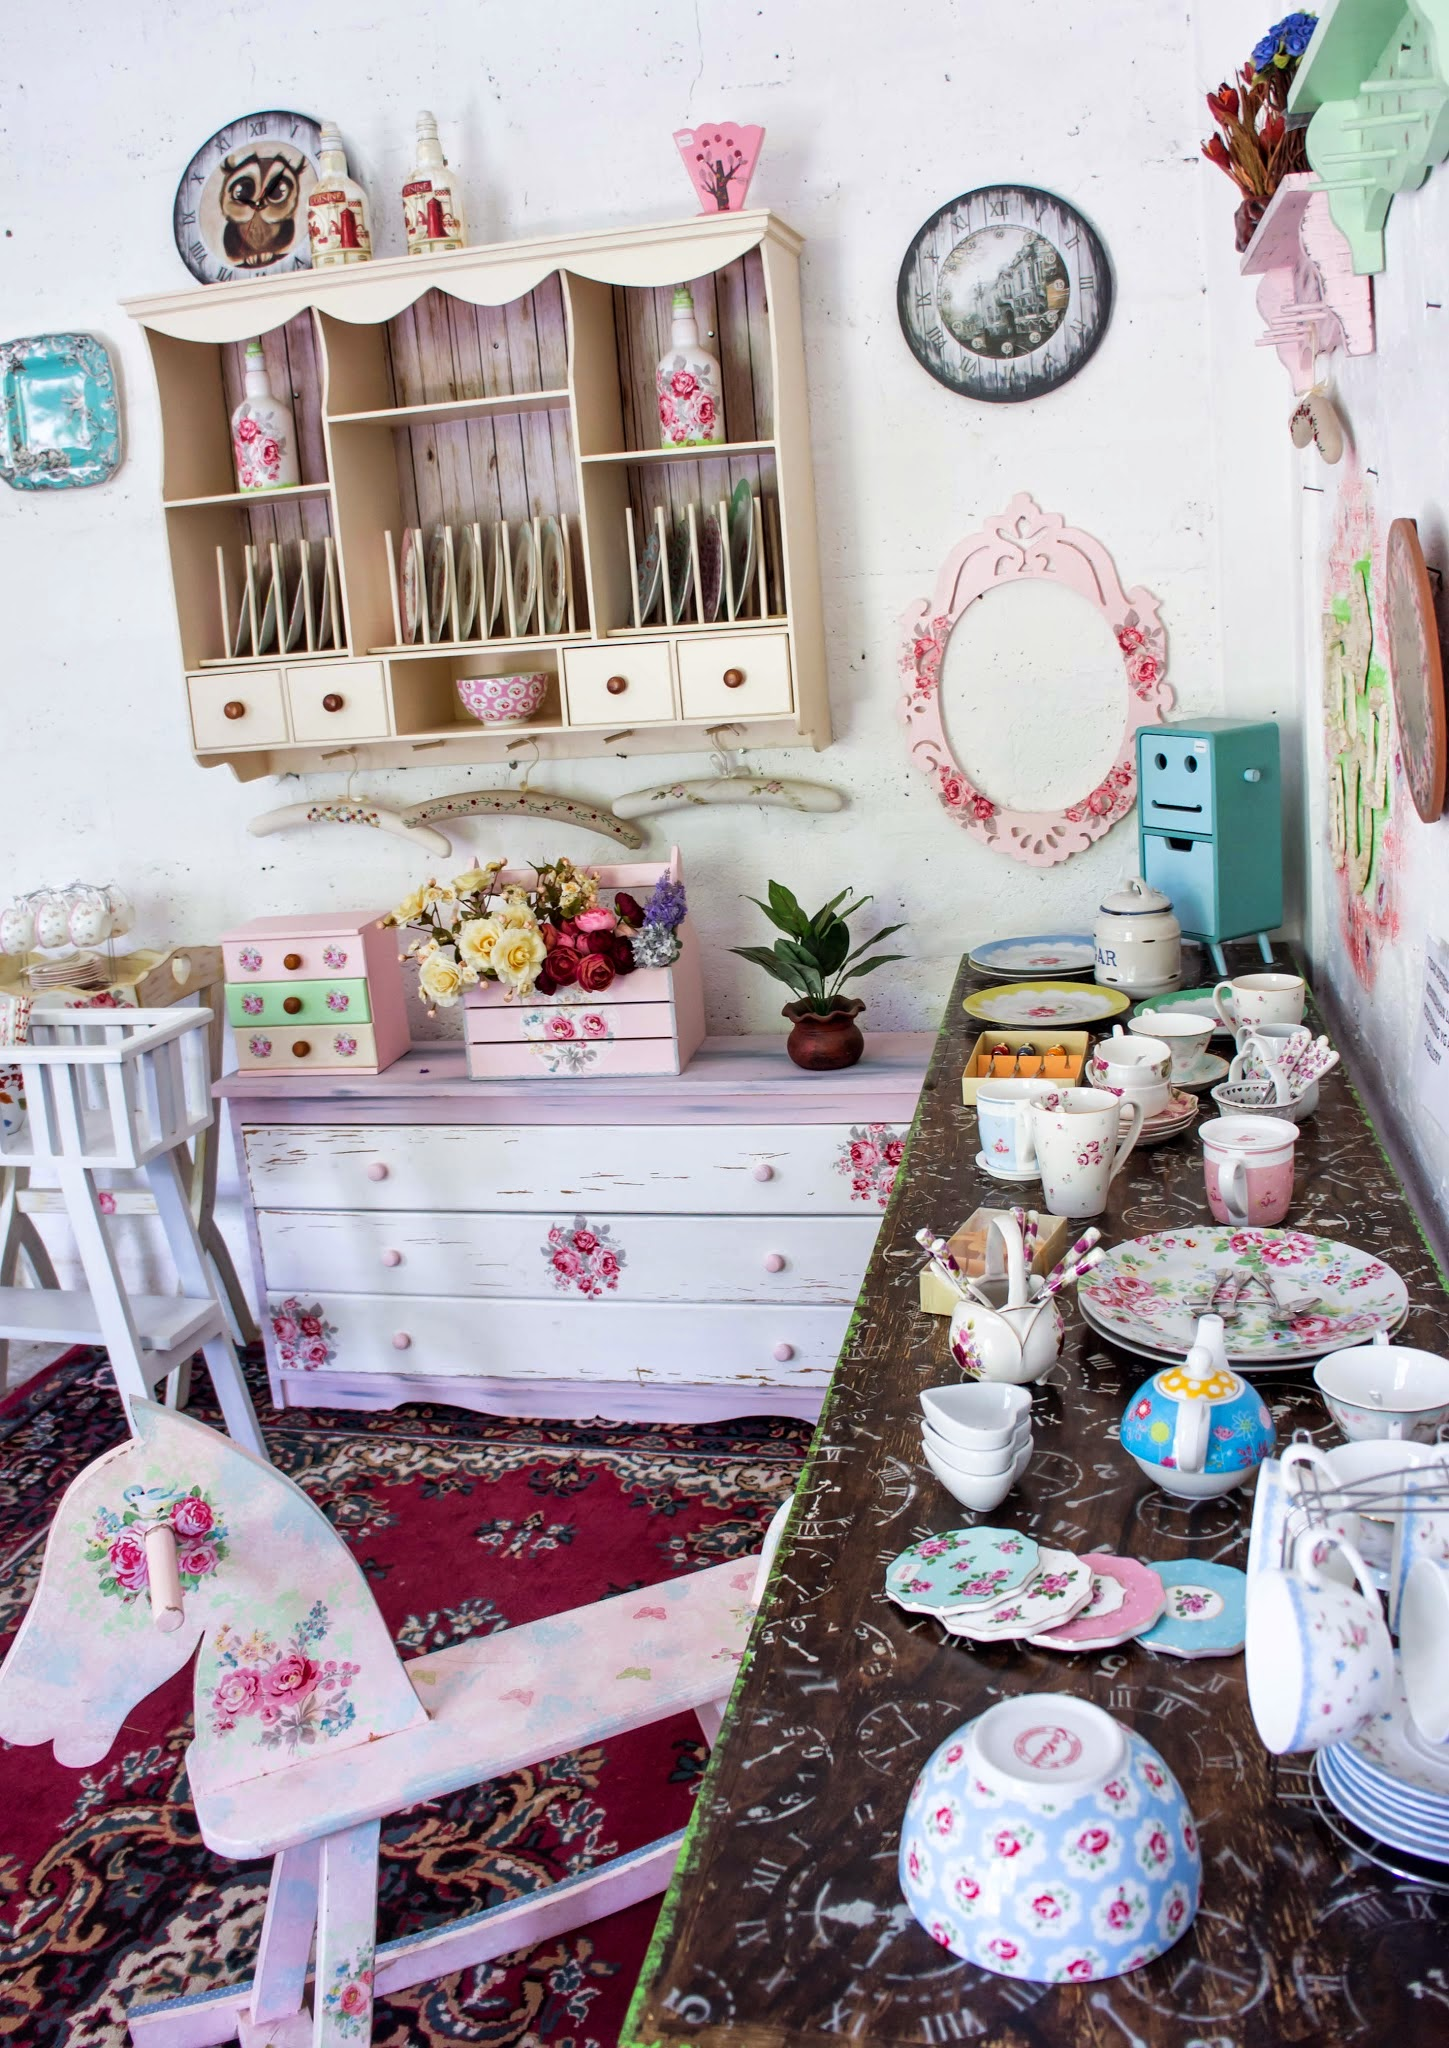 Come and joint with us at Shabby Chic Gallery in Bandung_jln Banyu biru no H